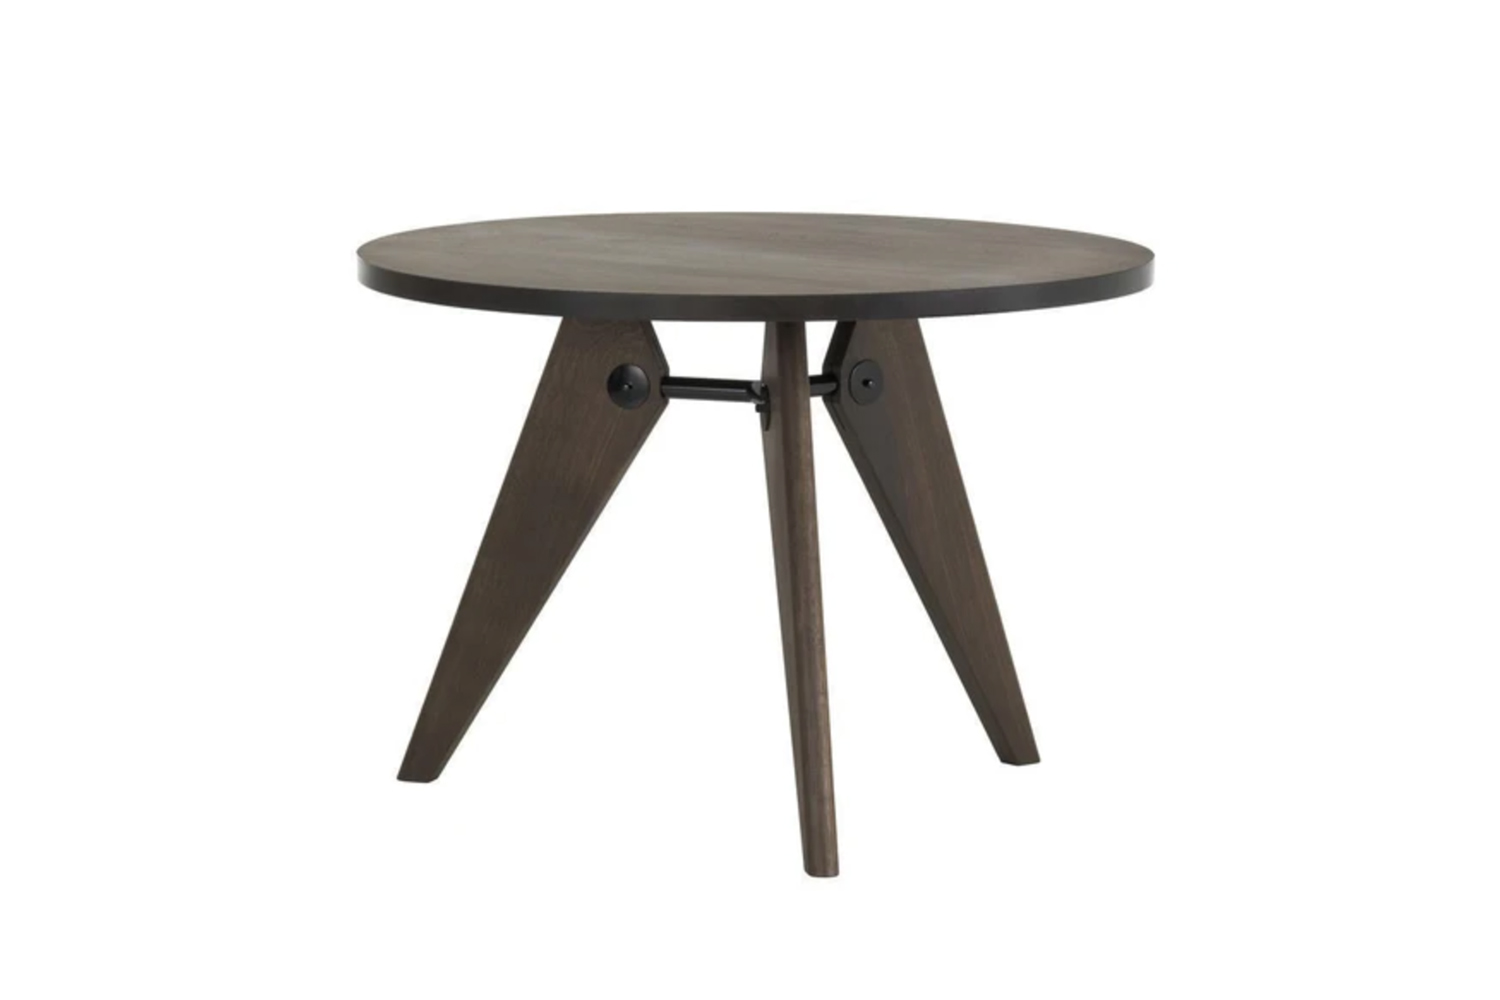 The Vitra Gueridon Table, shown in Smoked Oak, is $